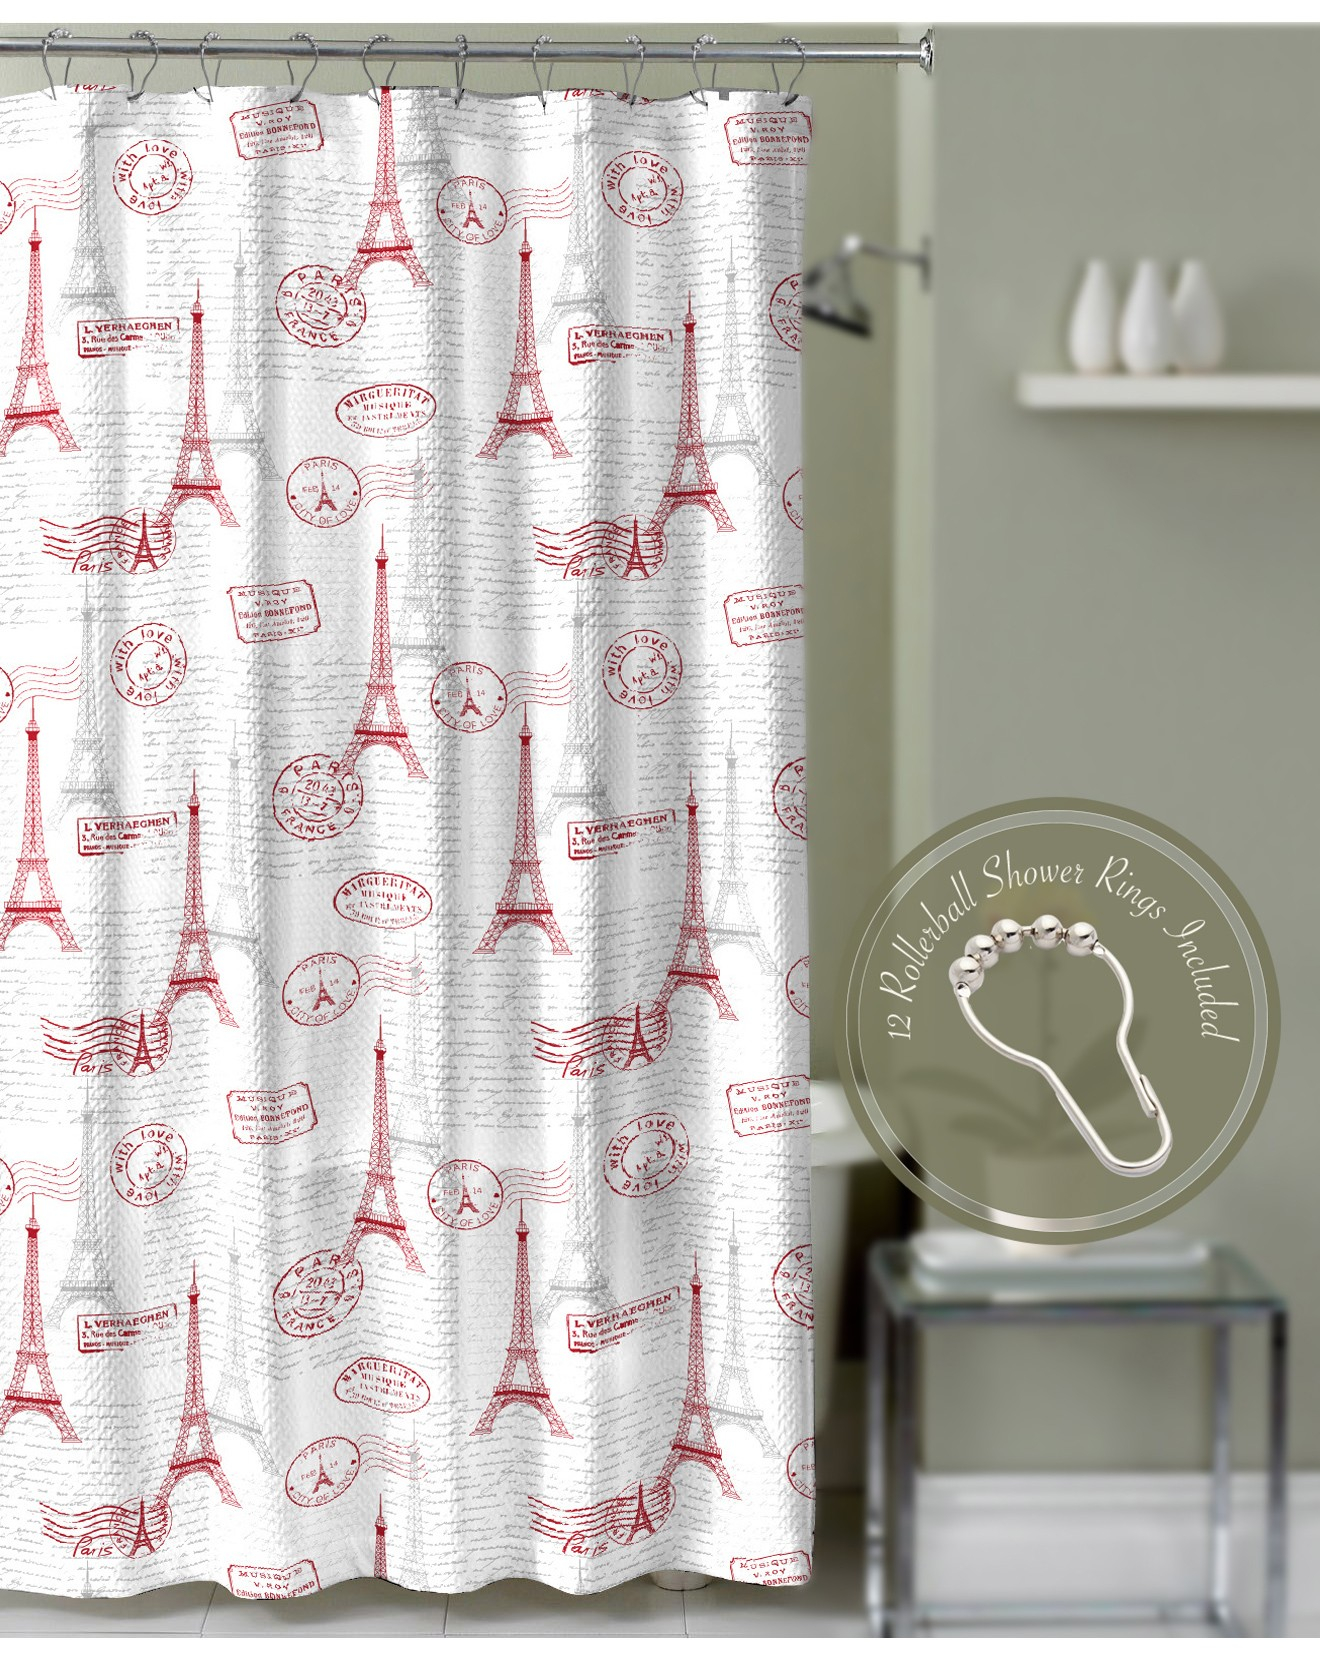 Eiffel Tower Shower Curtain Rings • Shower Curtains Ideas